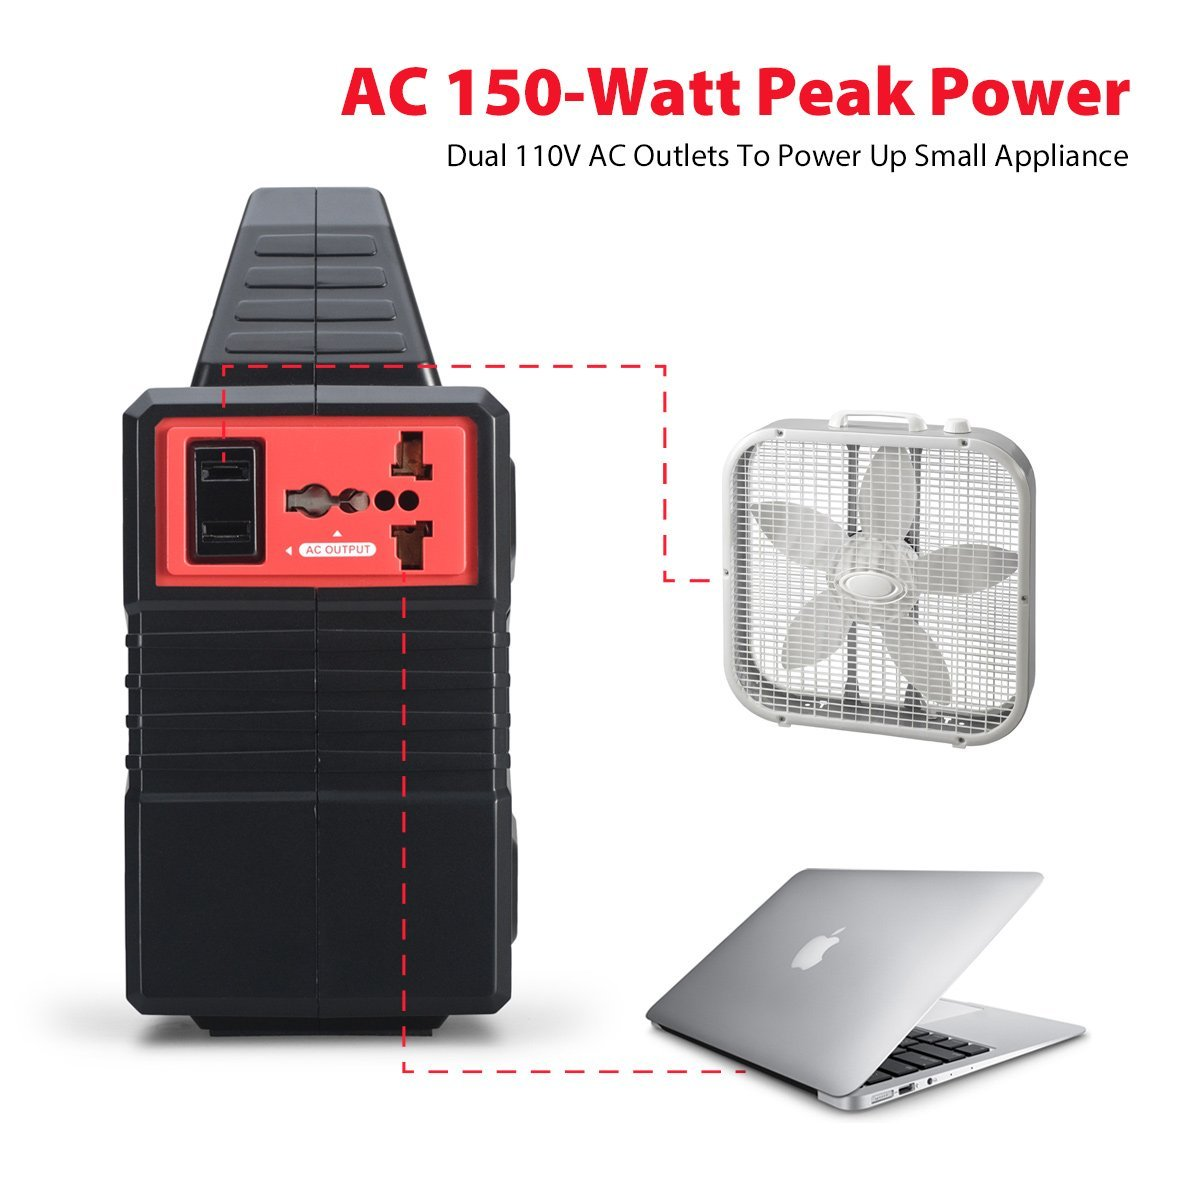 100 Watt Portable Generator Power Station 40800mah Suoer 2 In 1 Inverter Charger 500 Typer Saa 500w C 151wh Cpap Battery Pack Home Camping Emergency Supply Charged By Solar Panel Wall